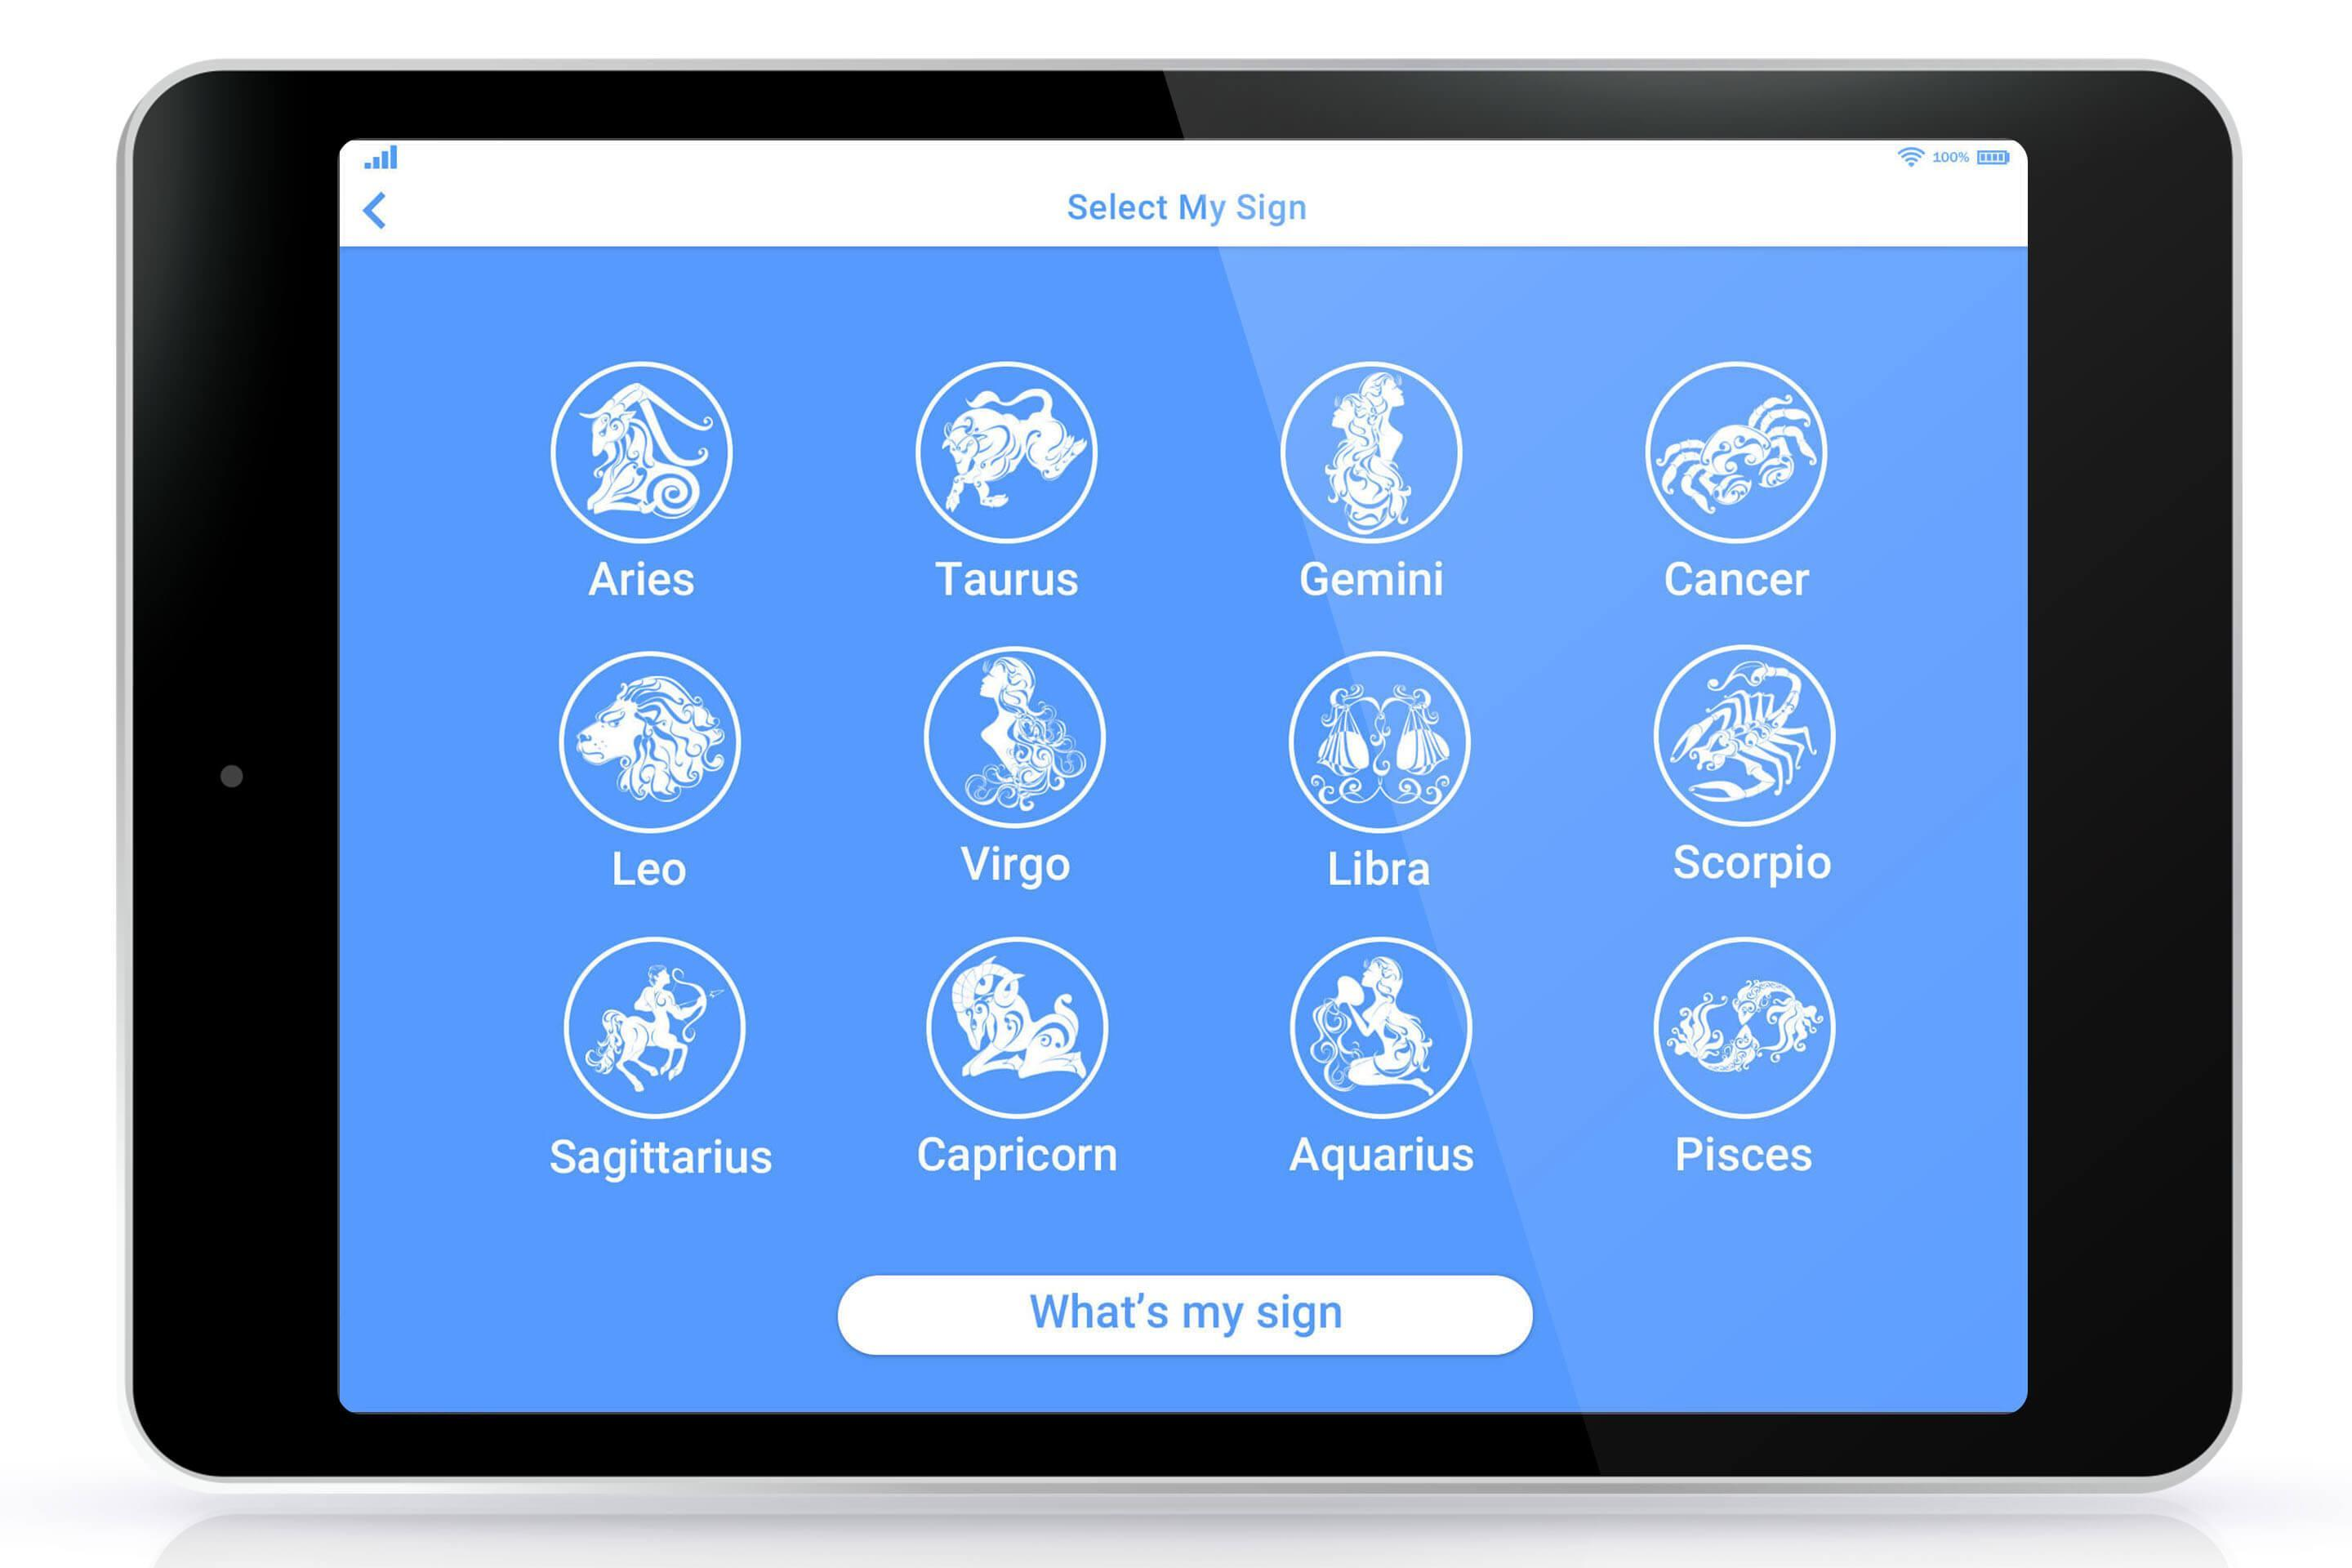 aa0c5e9c5 ... 2019 Horoscope: Free Daily Horoscope, Zodiac Signs screenshot 12 ...